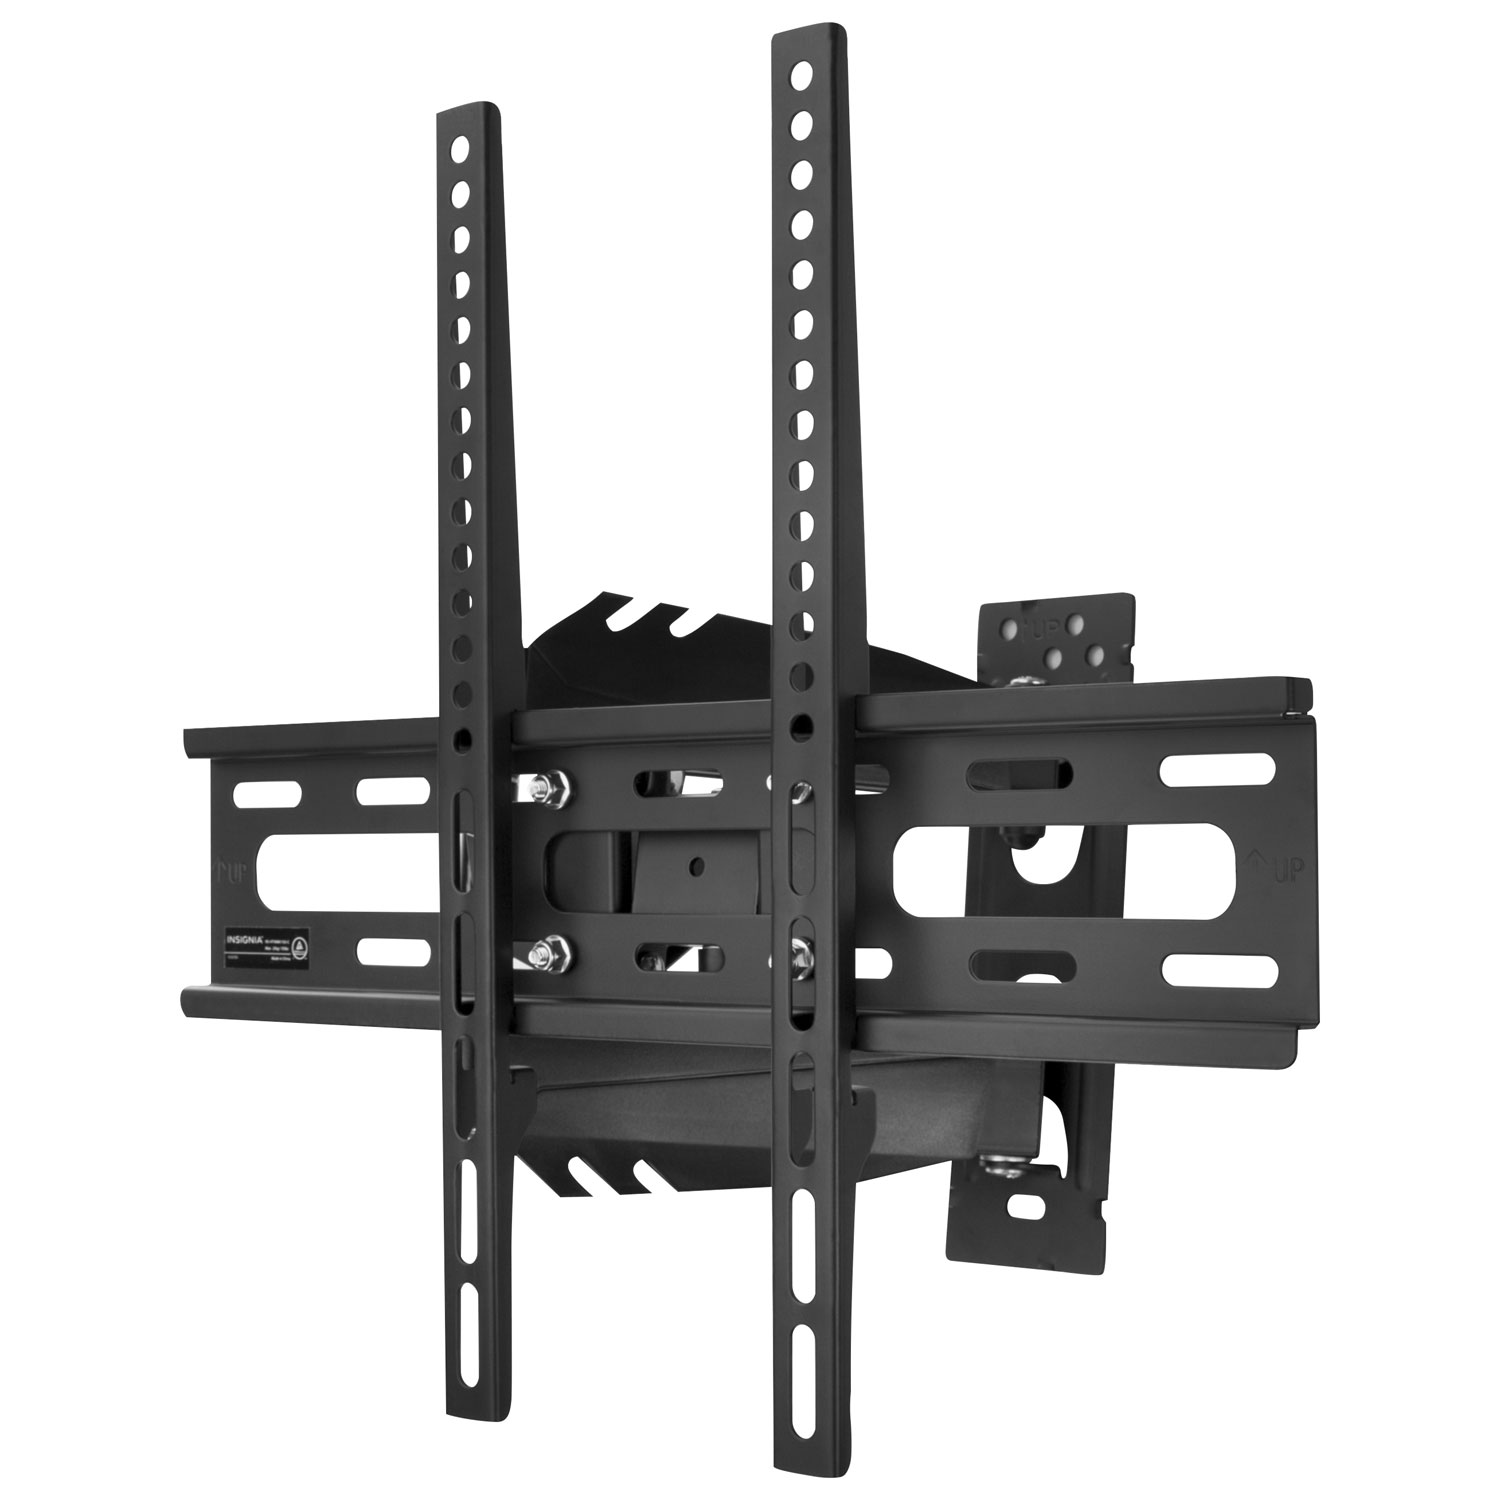 event most tv bracket truss adjustable shopping cheap on deals led find plasma lcd fits mount vemount ceiling tilting guides